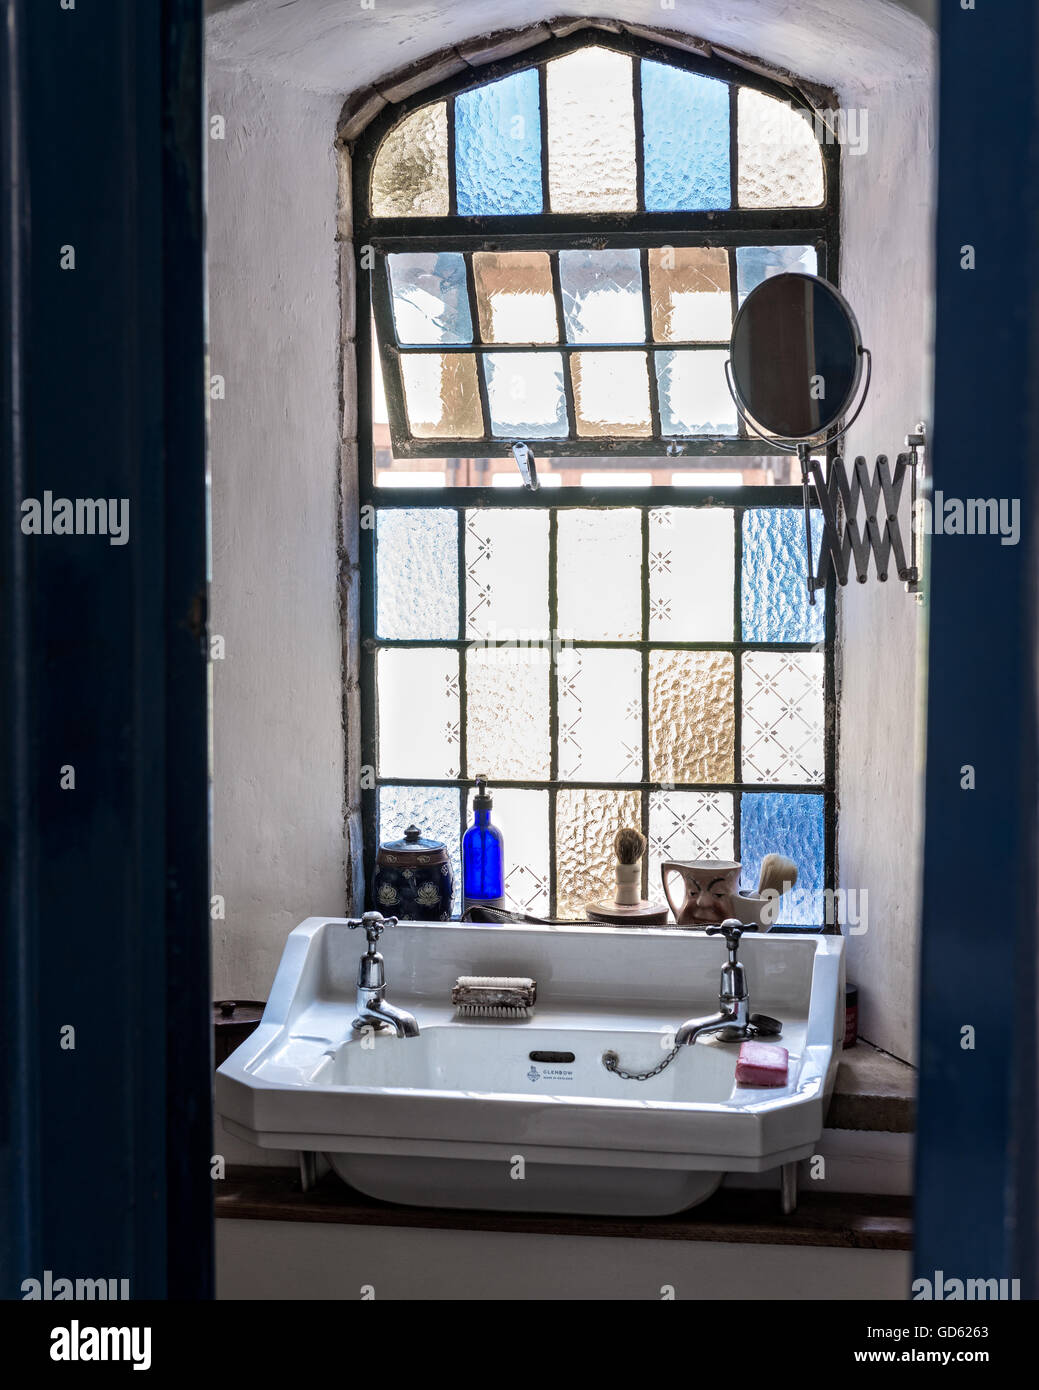 Stained glass and lead lights in arched window of bathroom - Stock Image